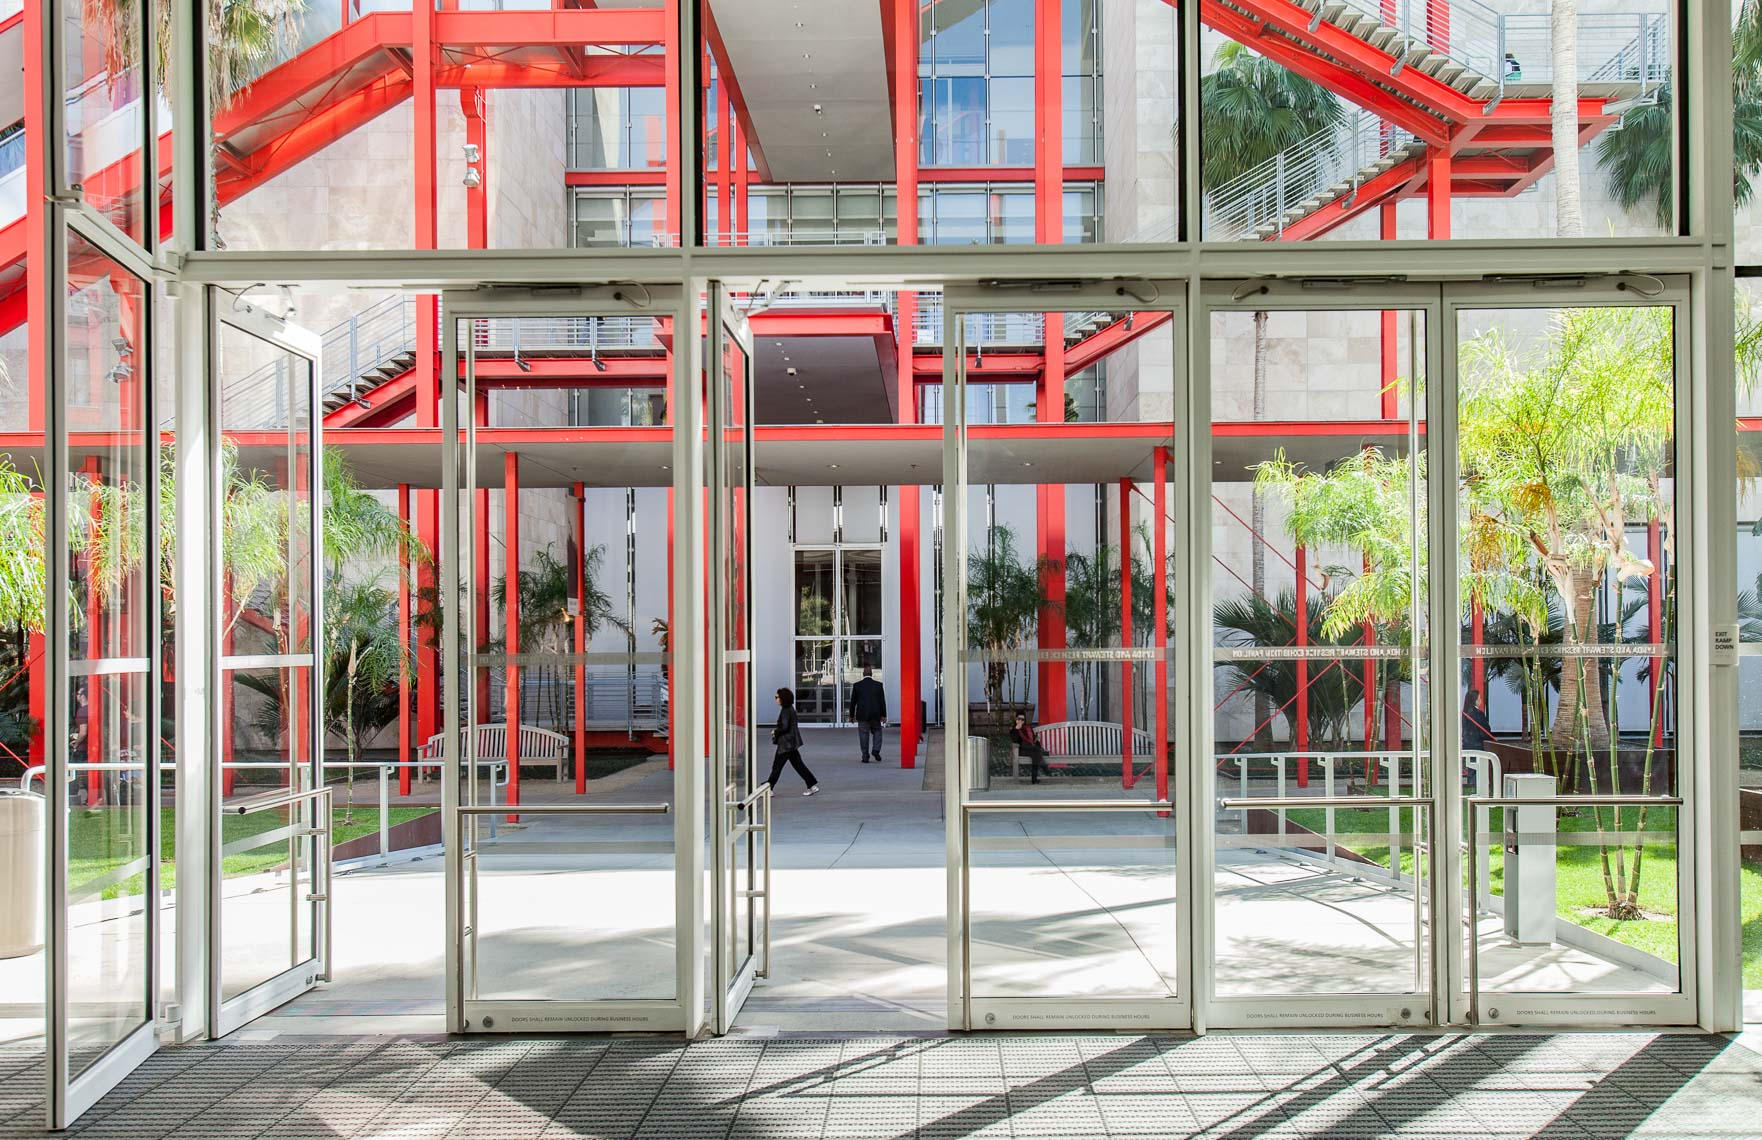 Glass doors open to a walkway with red stairways